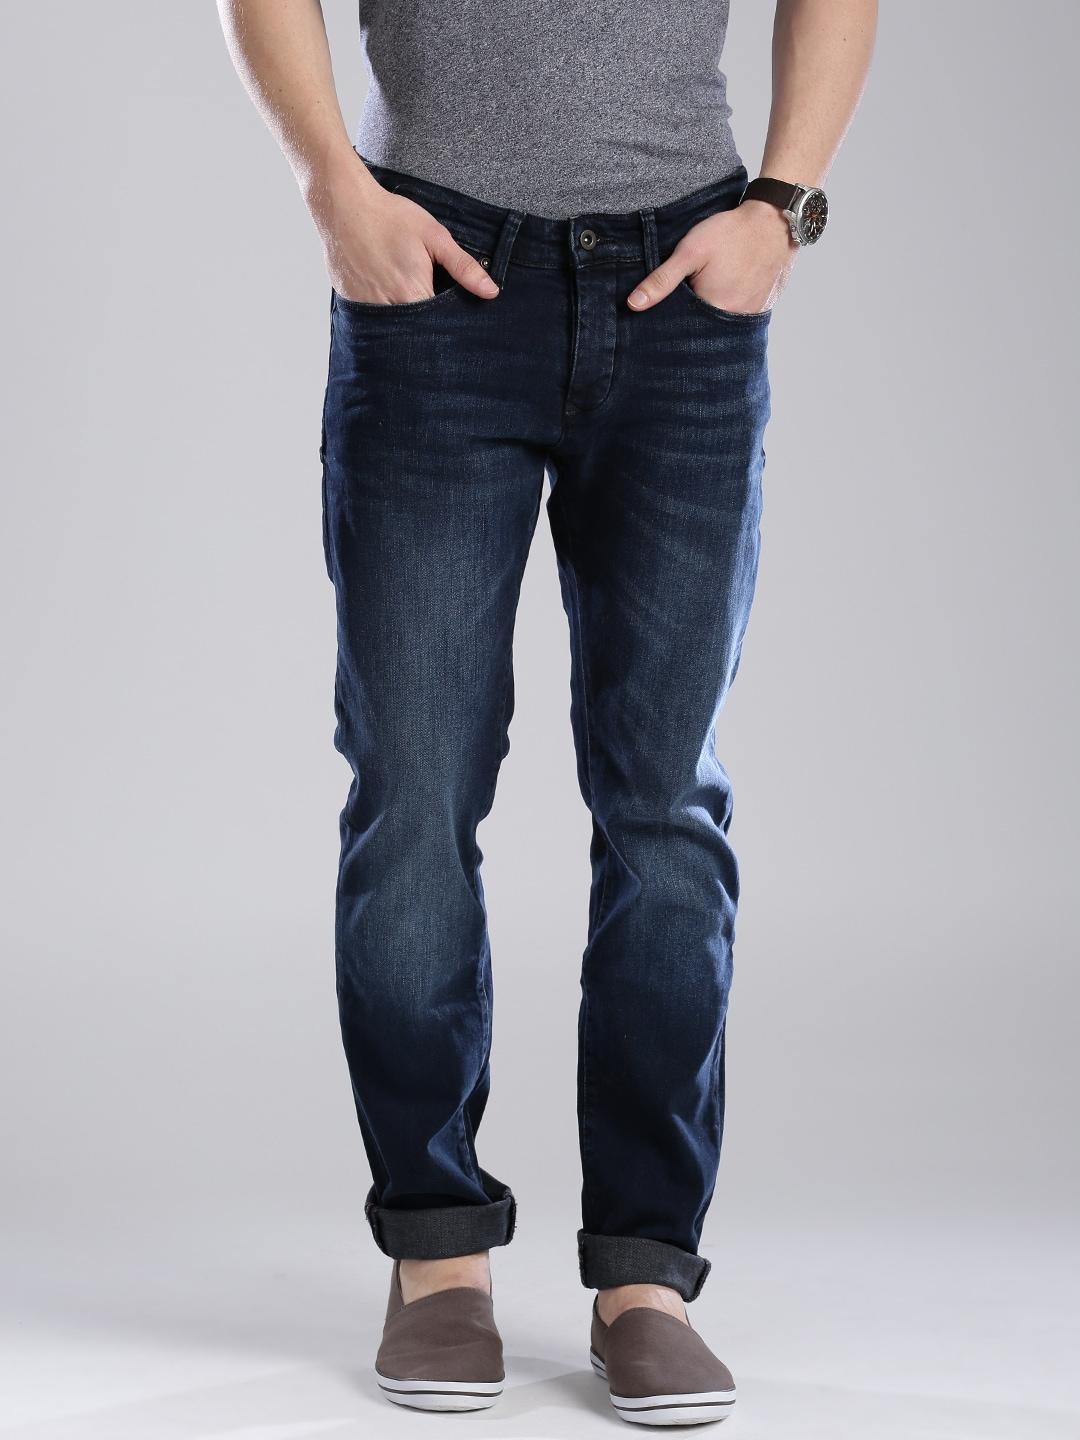 96642ab9 Tommy hilfiger a6atd009 Navy Slim Scanton Fit Jeans - Best Price in ...